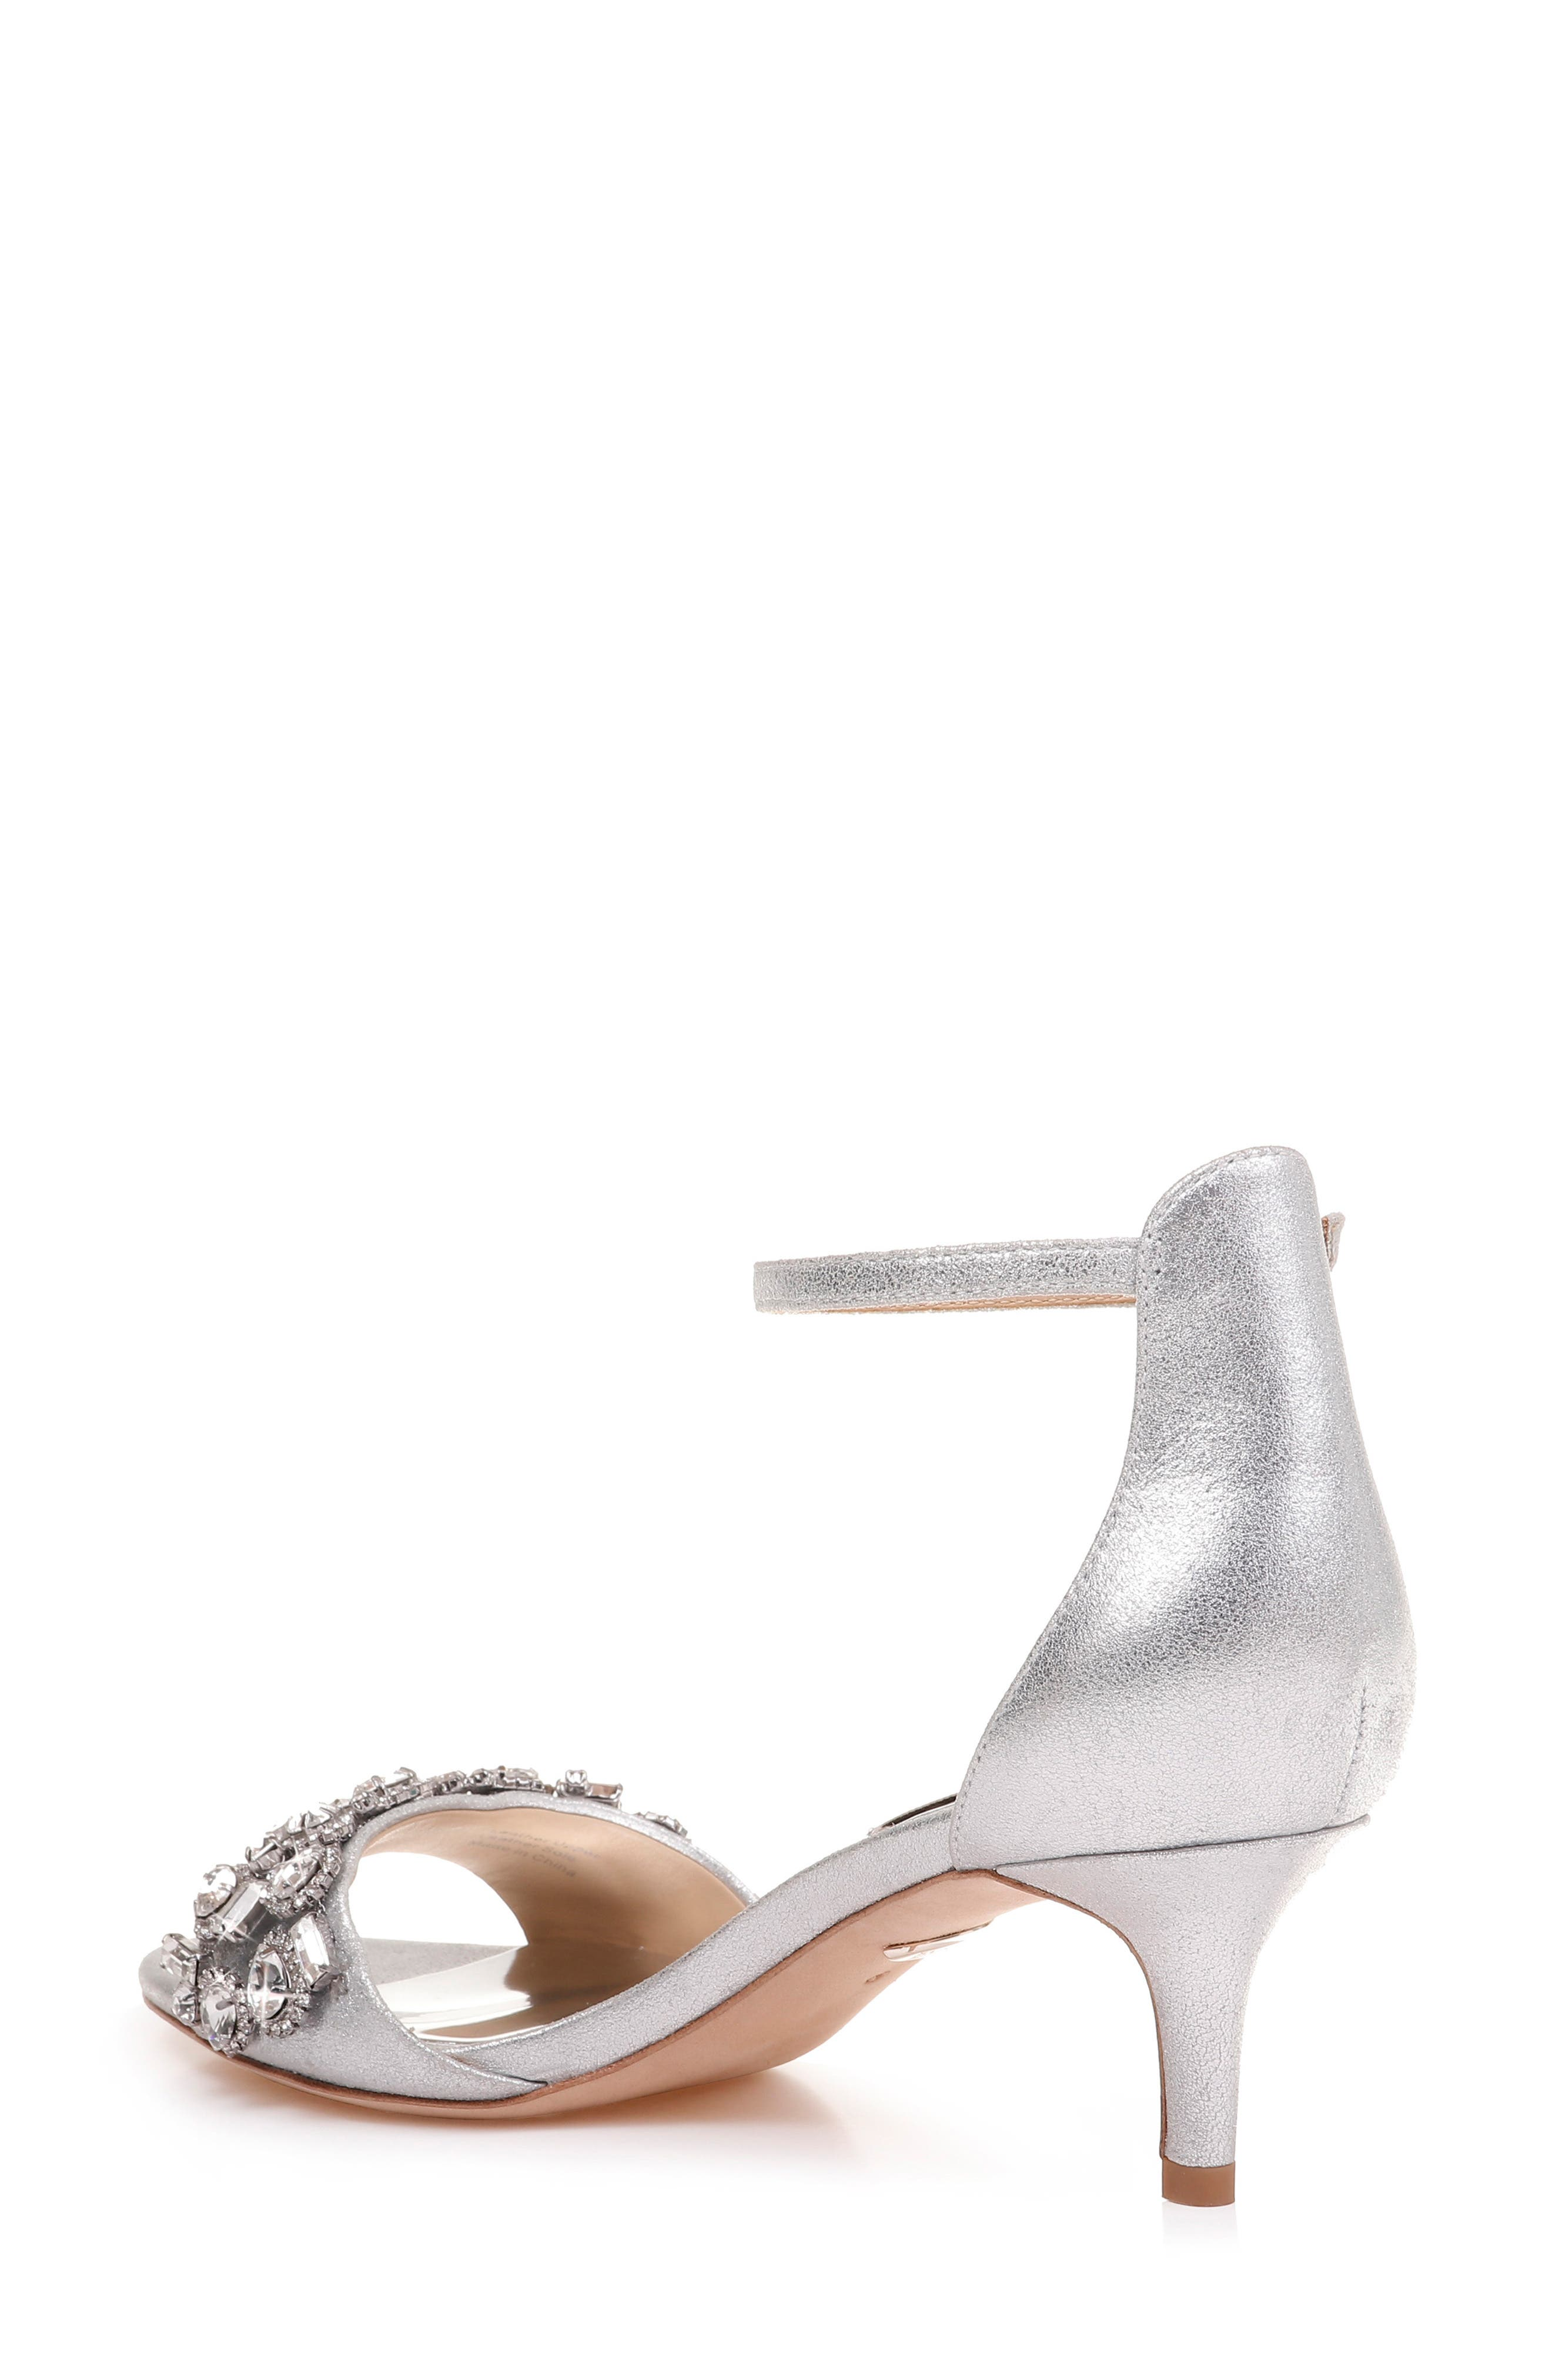 BADGLEY MISCHKA COLLECTION, Badgley Mischka Lara Crystal Embellished Sandal, Alternate thumbnail 3, color, SILVER METALLIC SUEDE